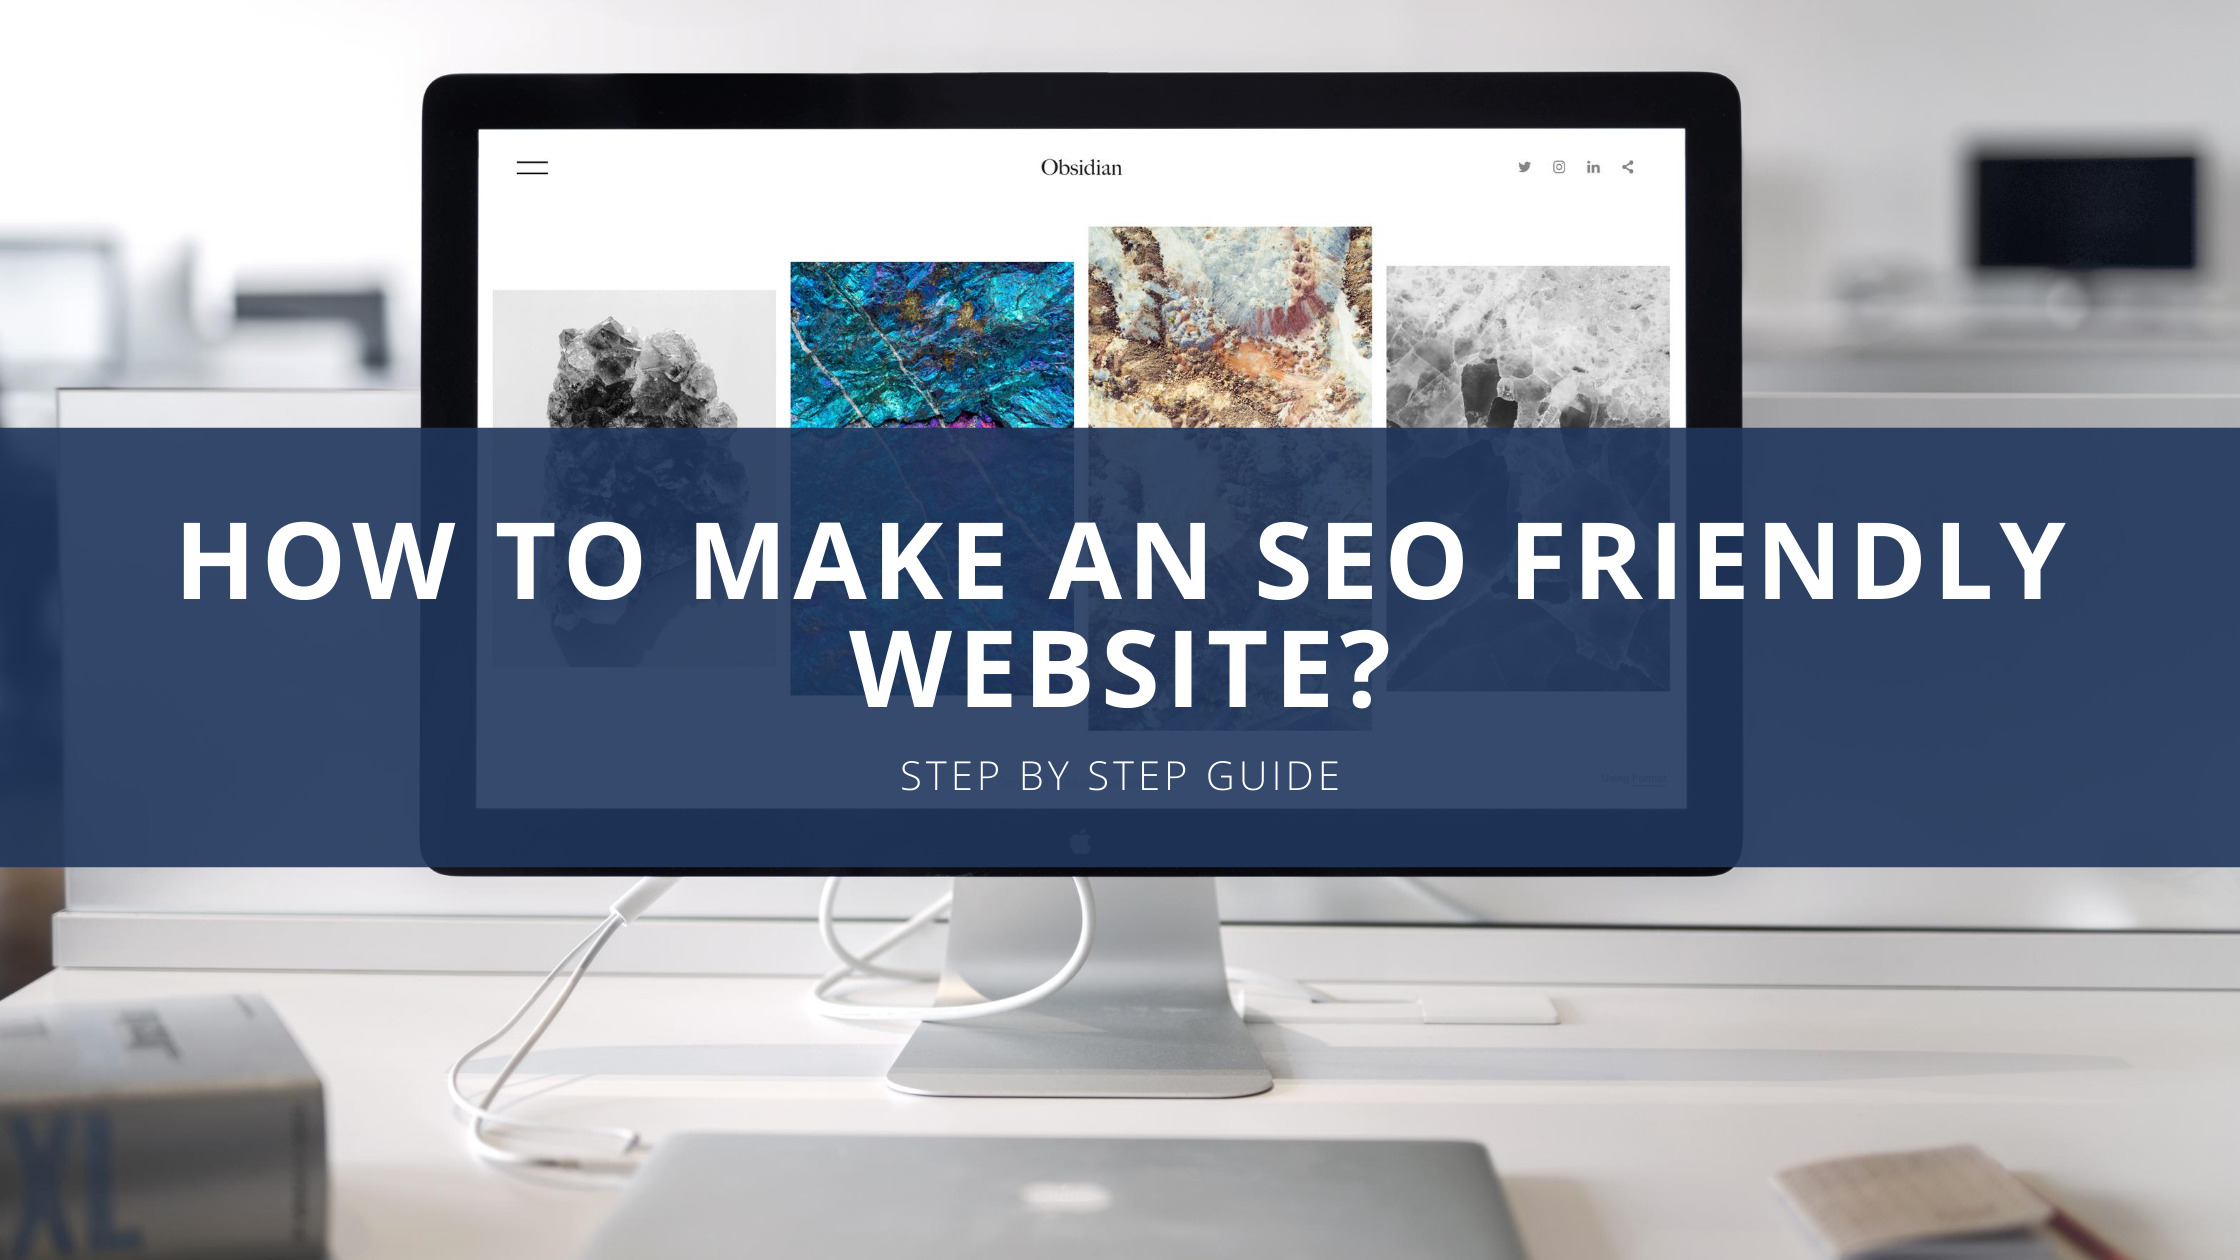 How to make an SEO friendly website?